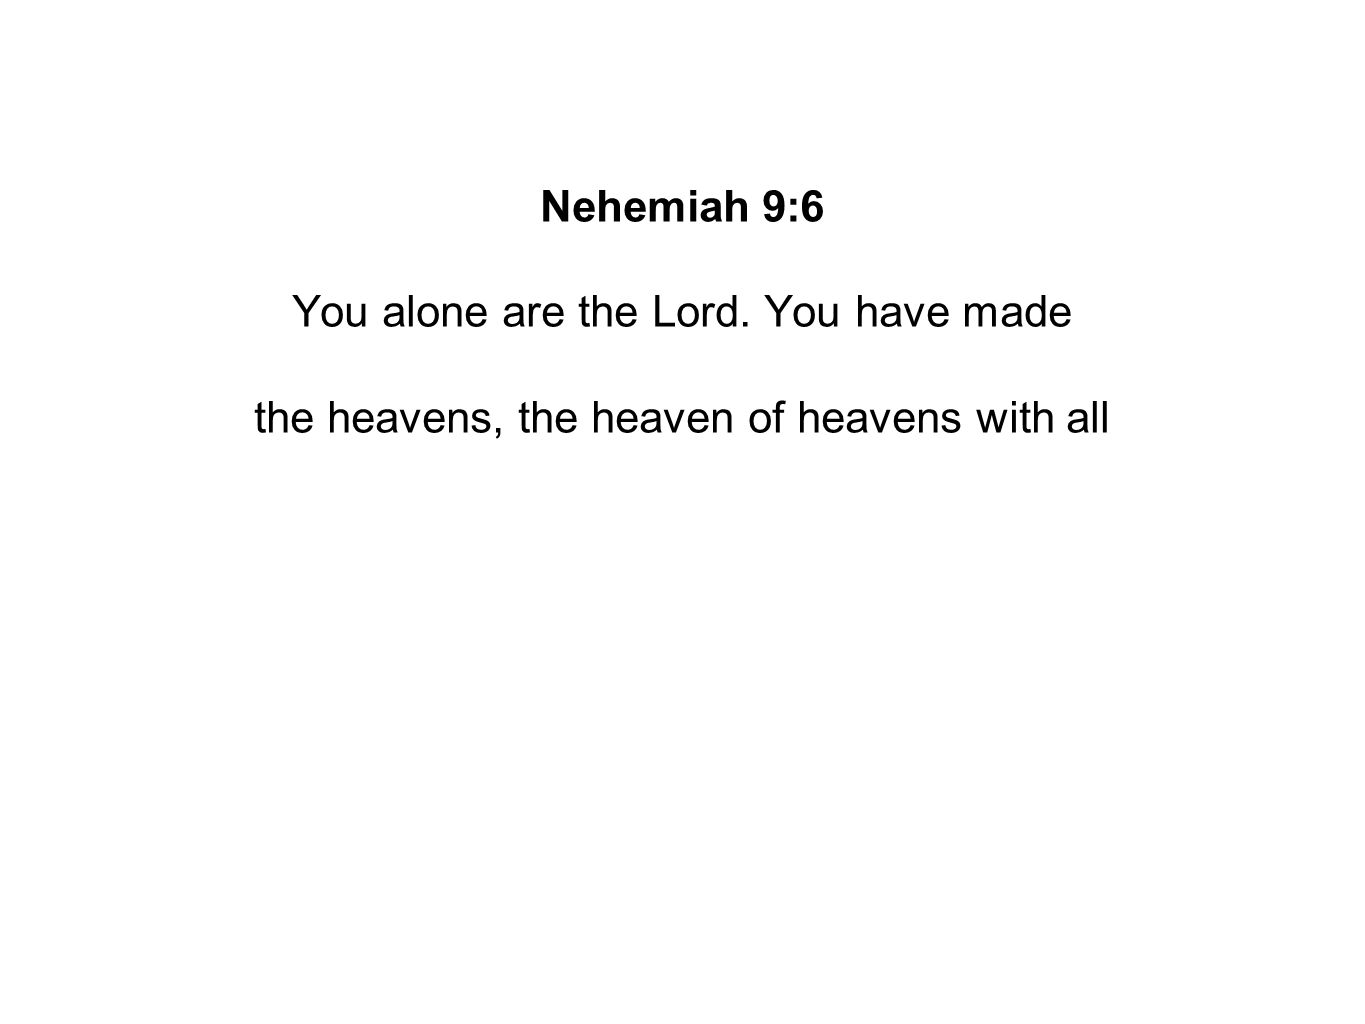 Nehemiah 9:6 You alone are the Lord. You have made the heavens, the heaven of heavens with all